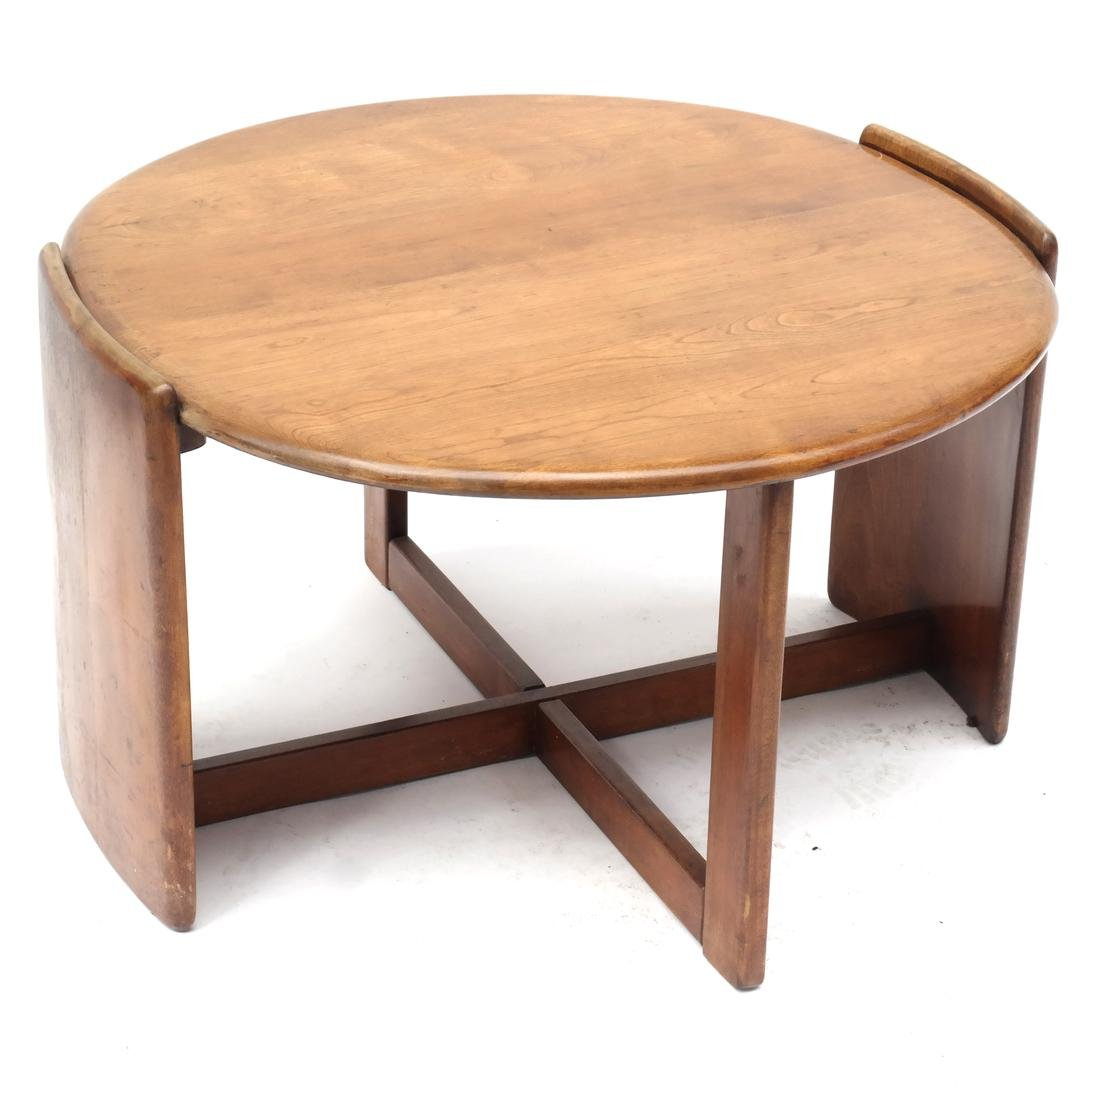 Modern Low Table